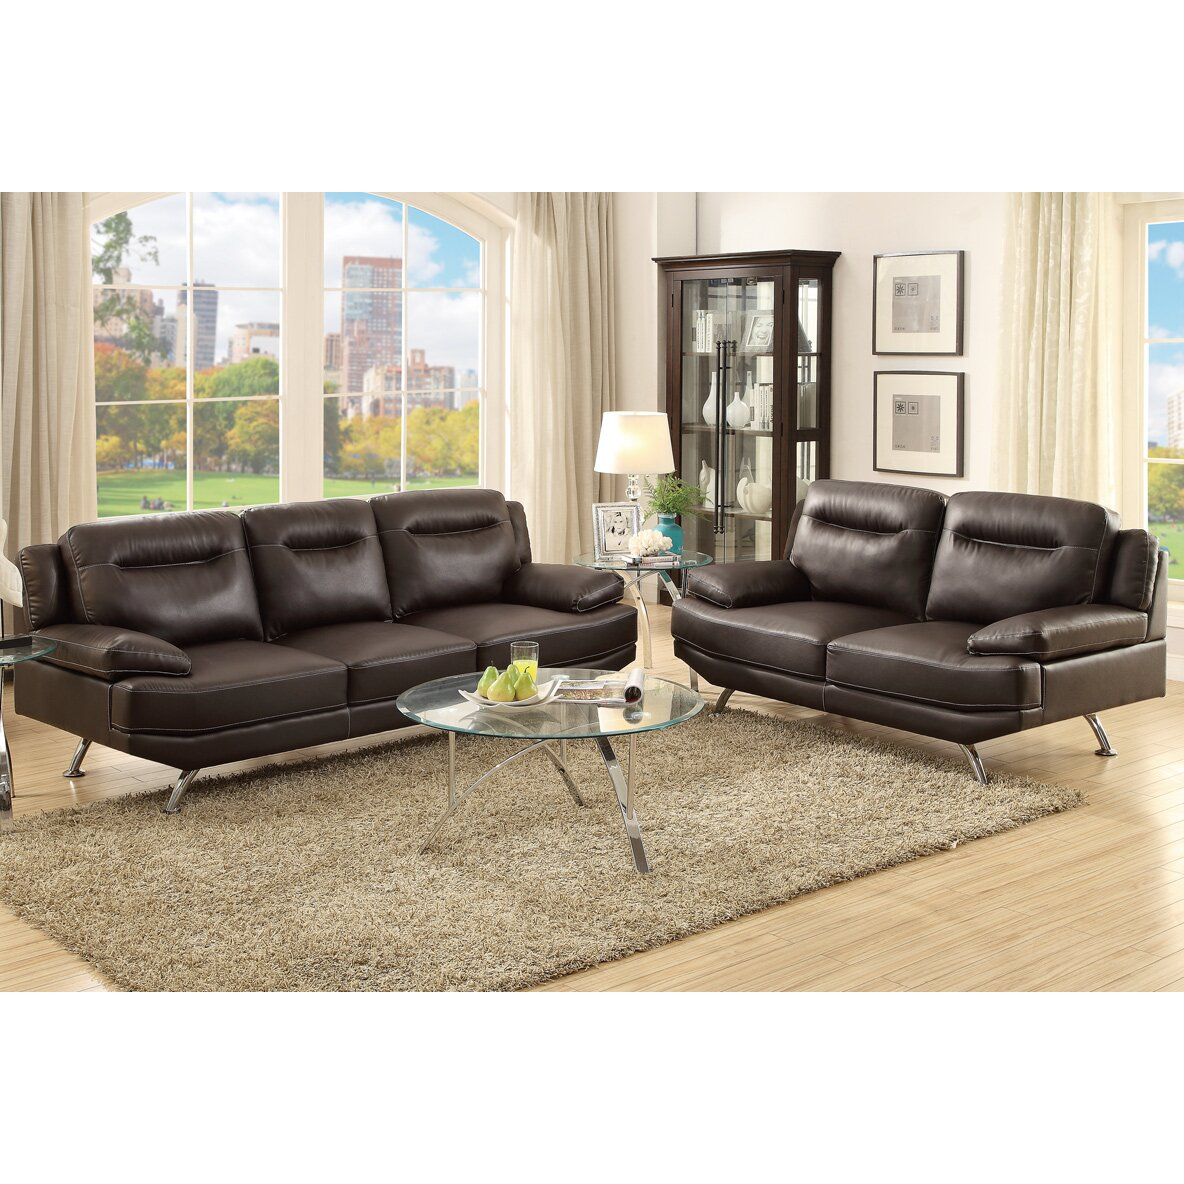 Poundex bobkona danville 2 piece sofa and loveseat set for Bobkona atlantic 2 piece sectional sofa